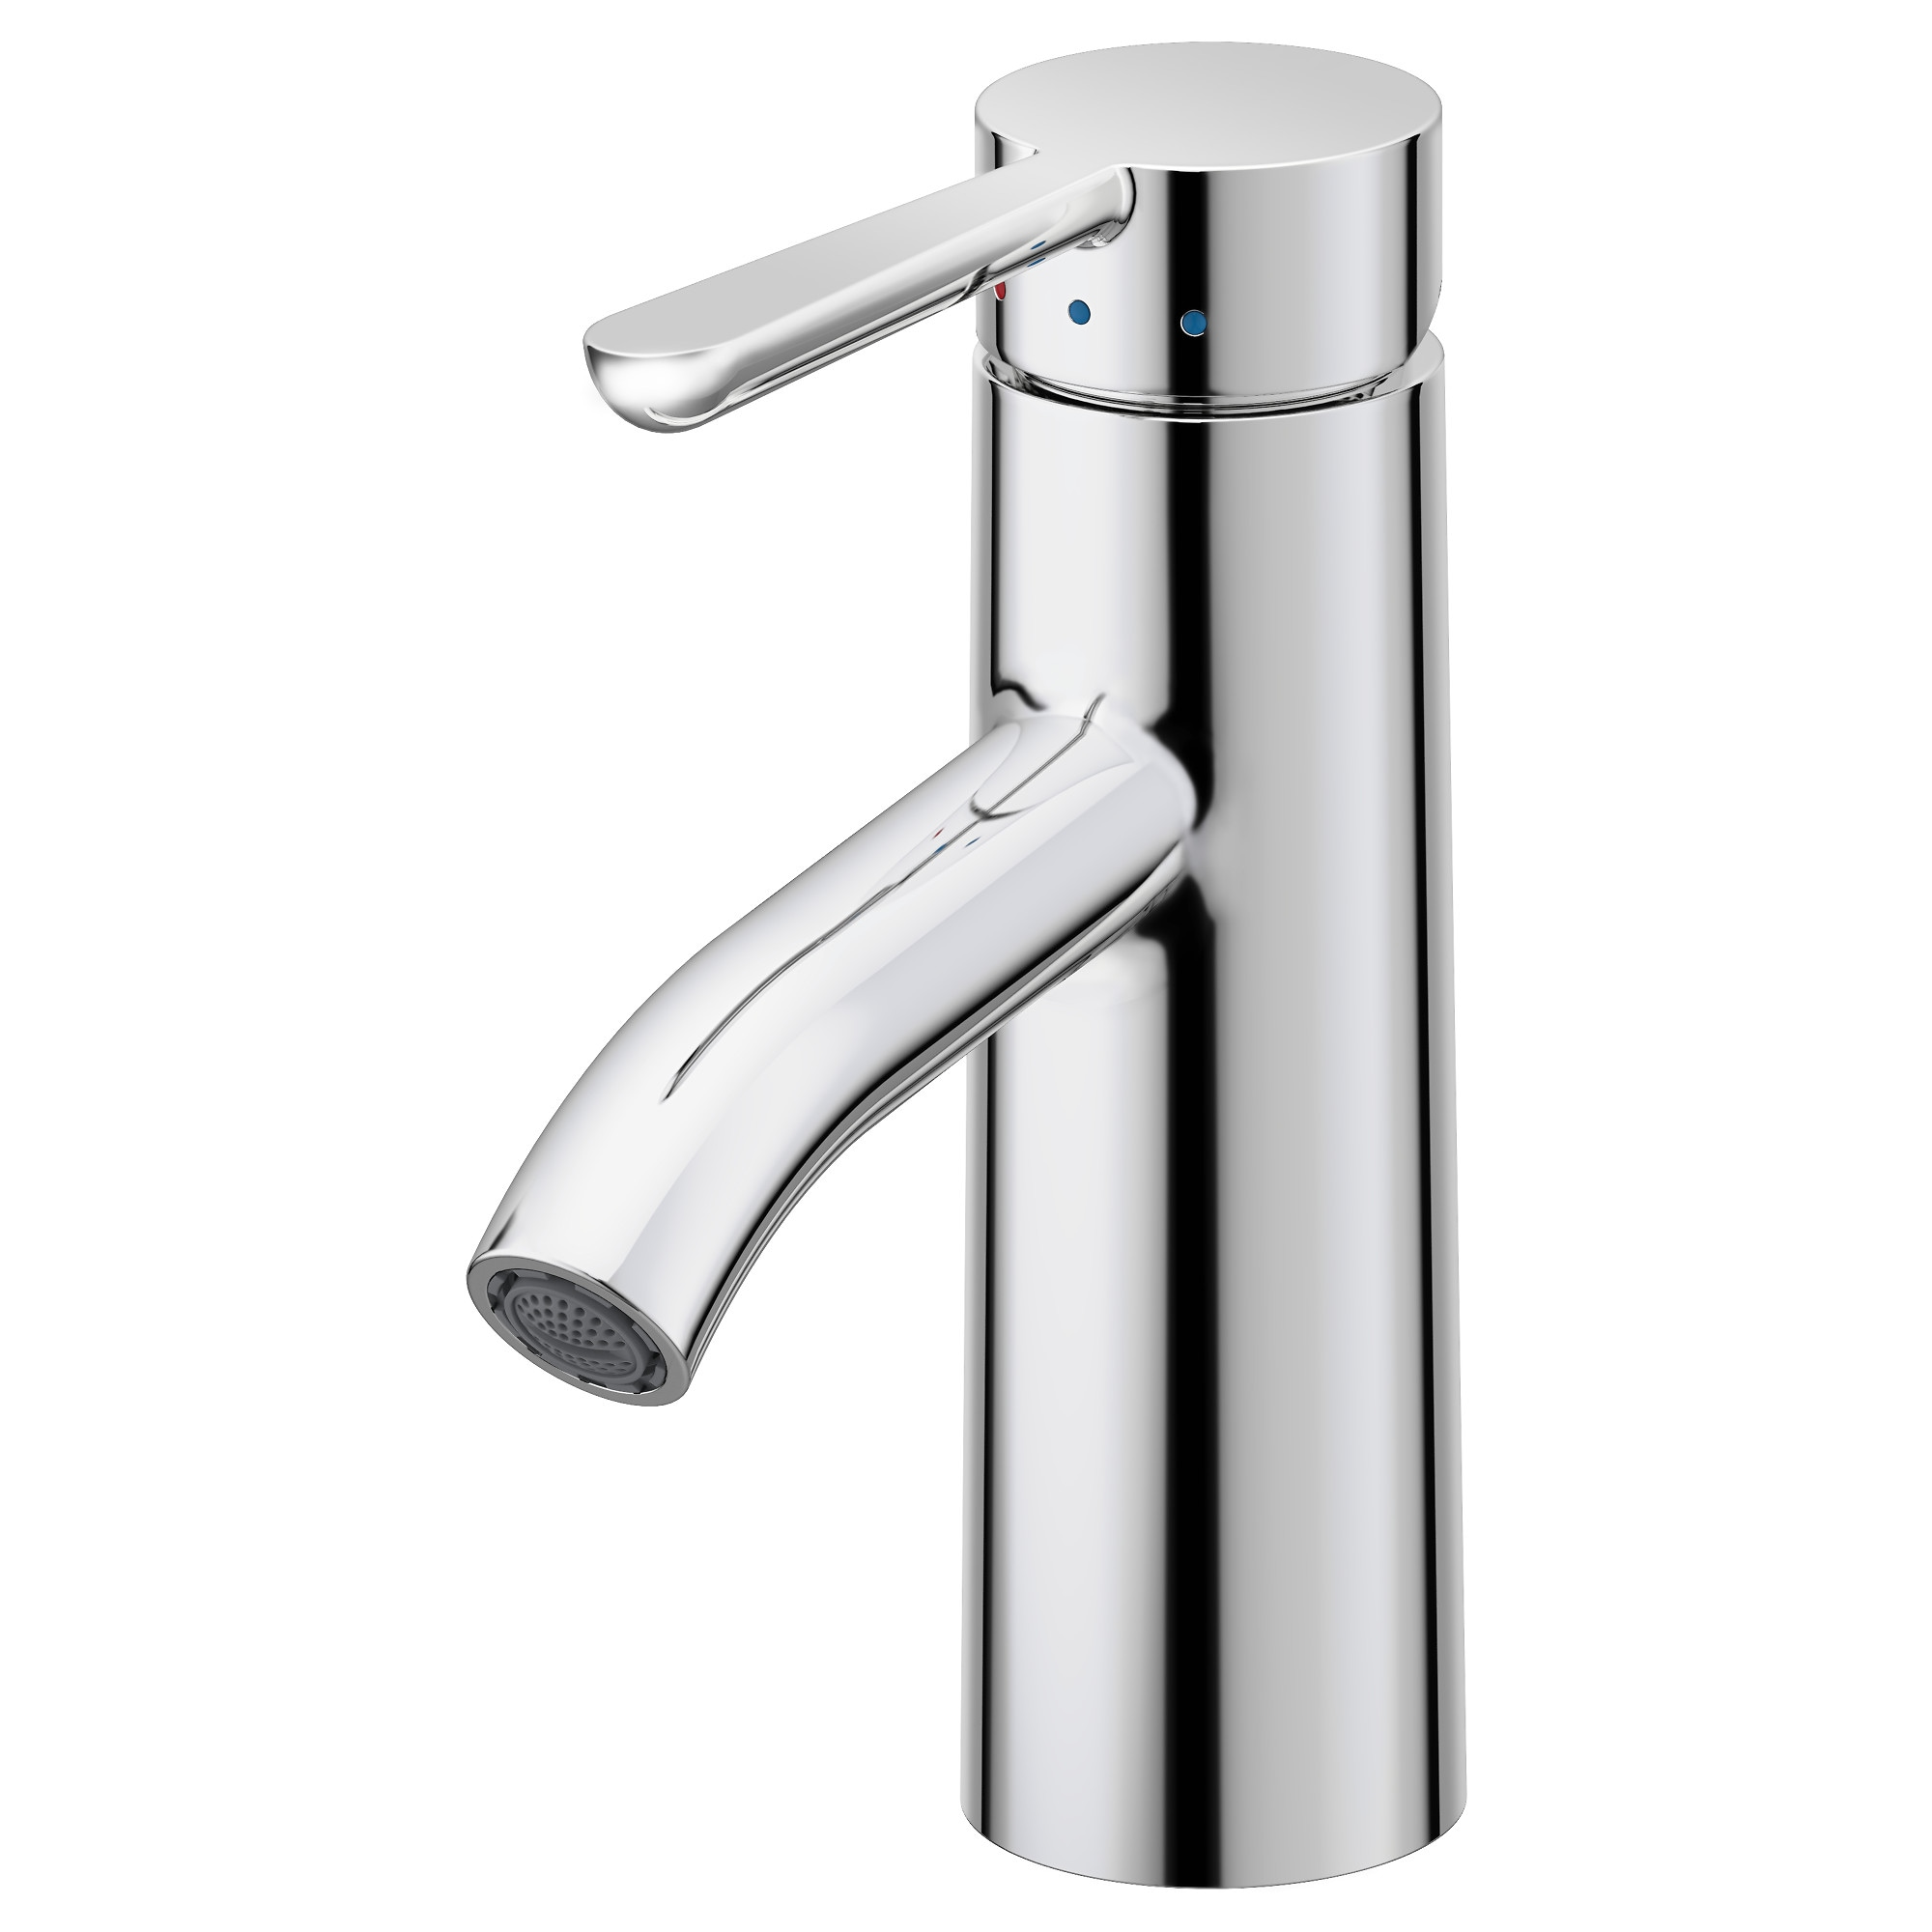 DALSKÄR Wash-basin mixer tap with strainer - IKEA